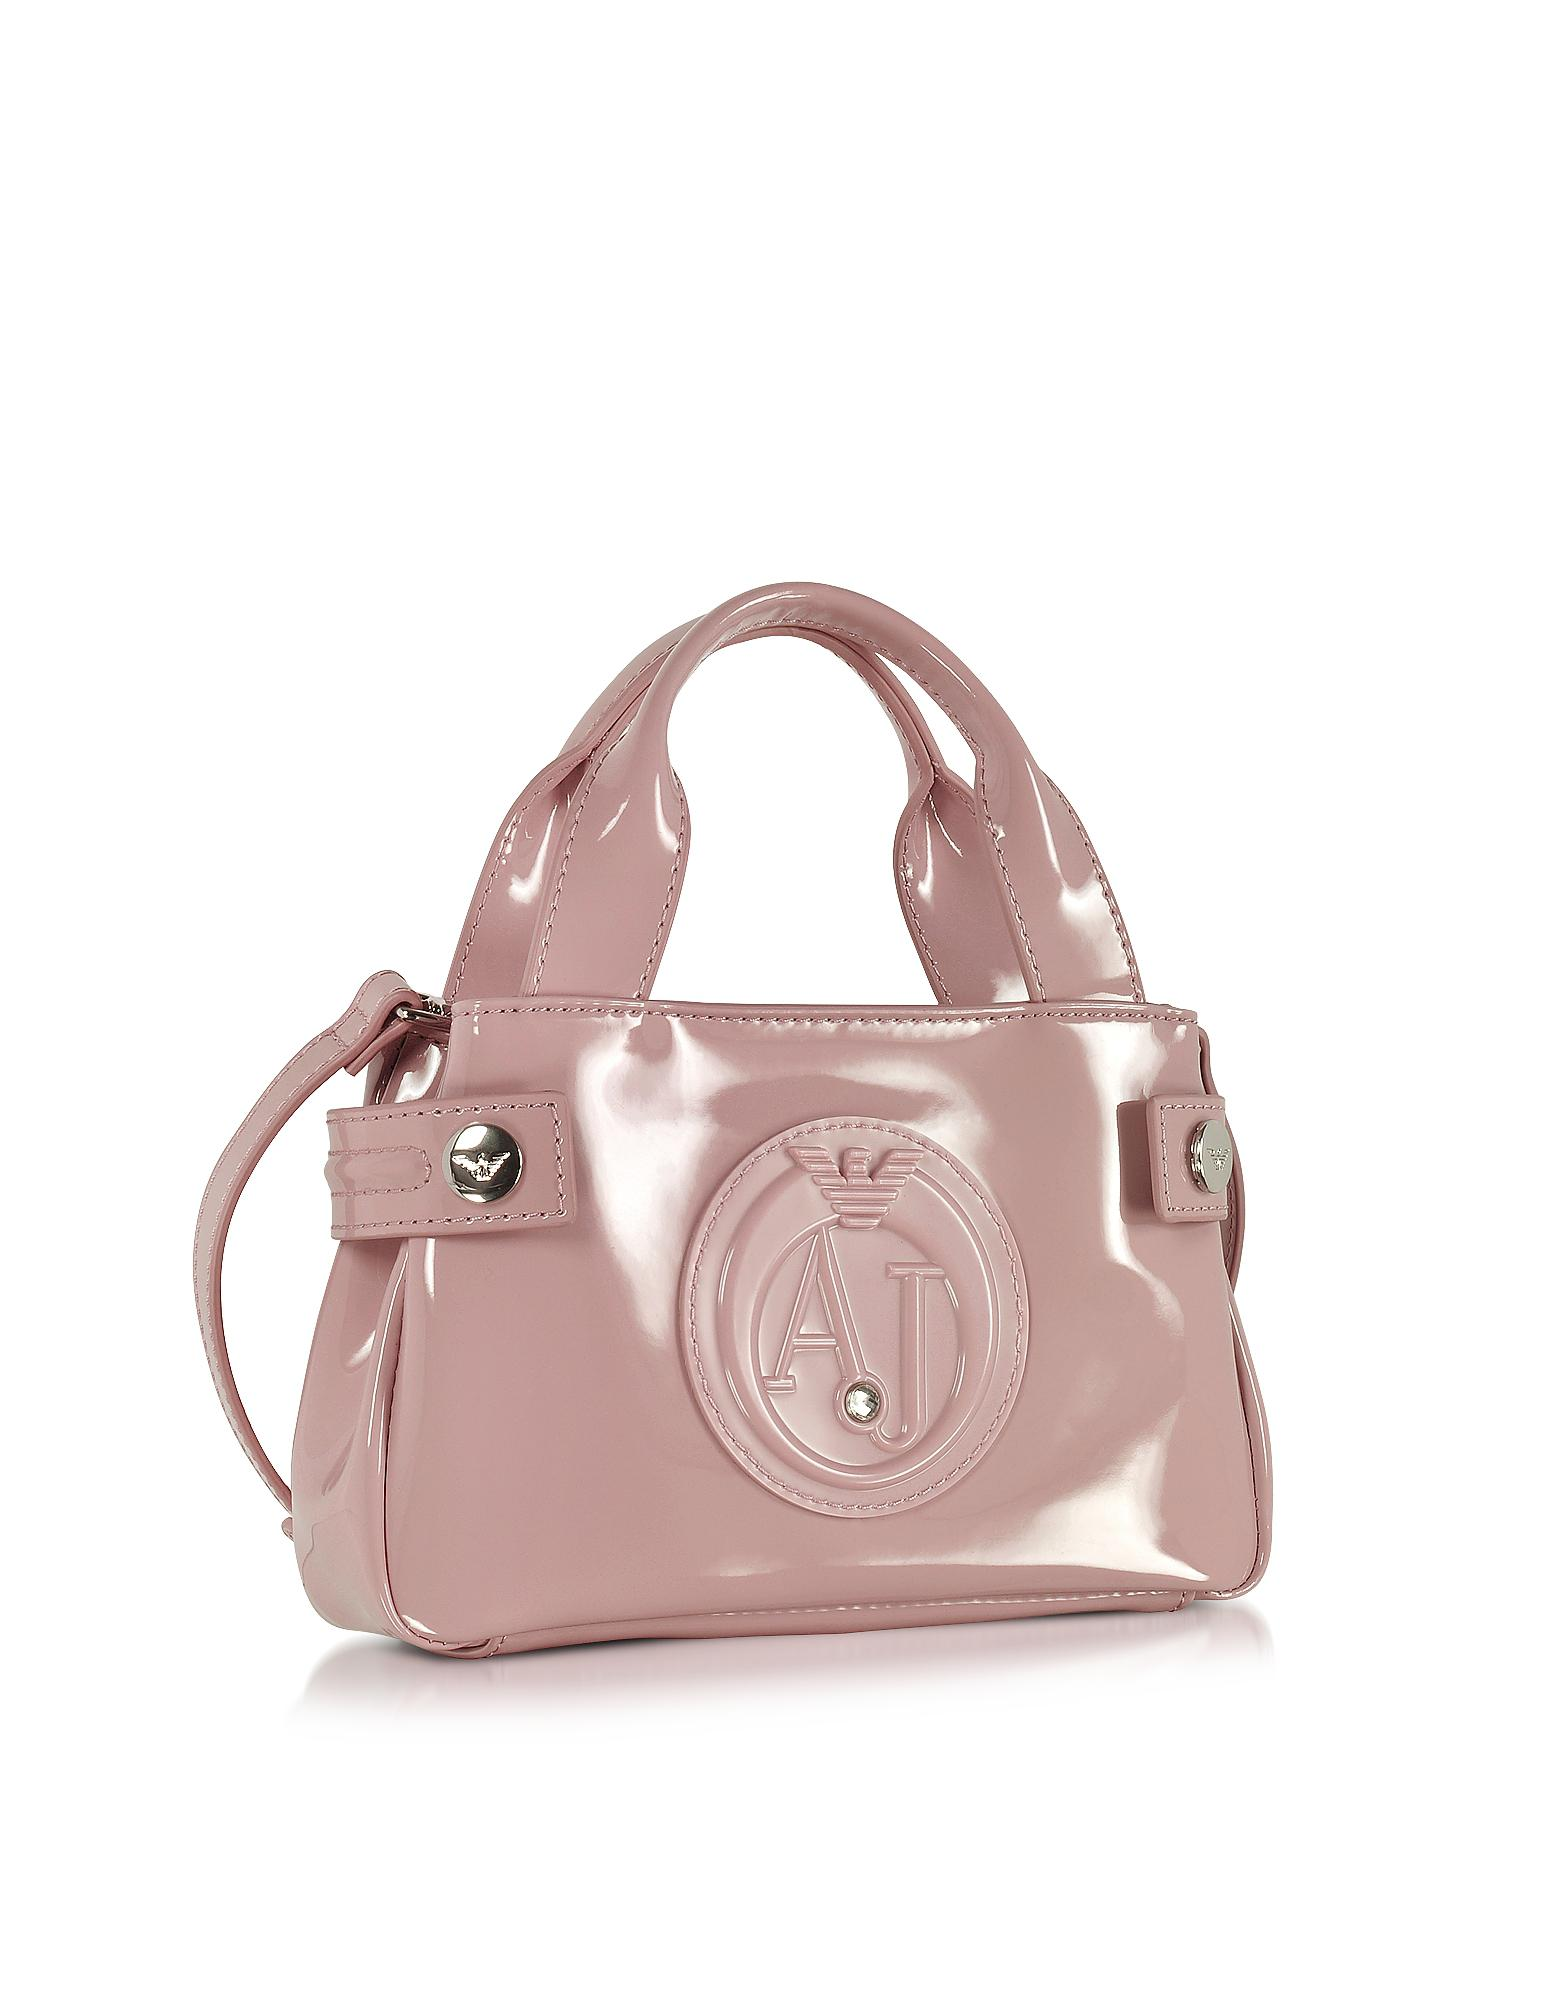 b7af74854149 Lyst - Armani Jeans Signature Mini Patent Leather Tote Bag in Pink